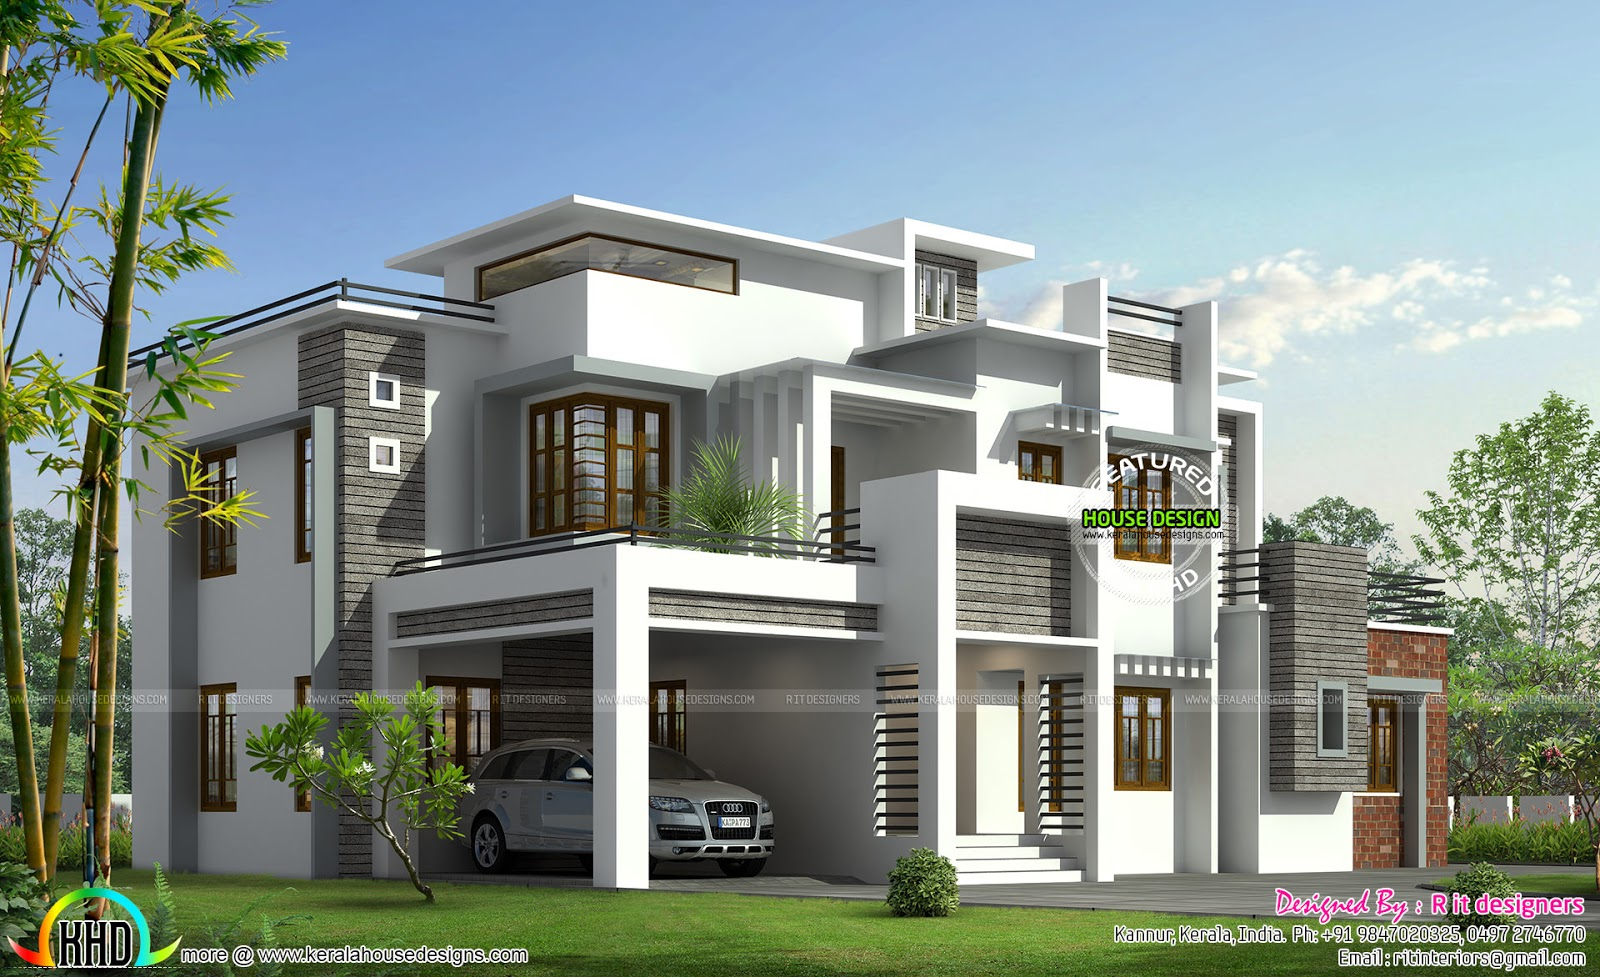 Box model contemporary house kerala home design and Model plans for house